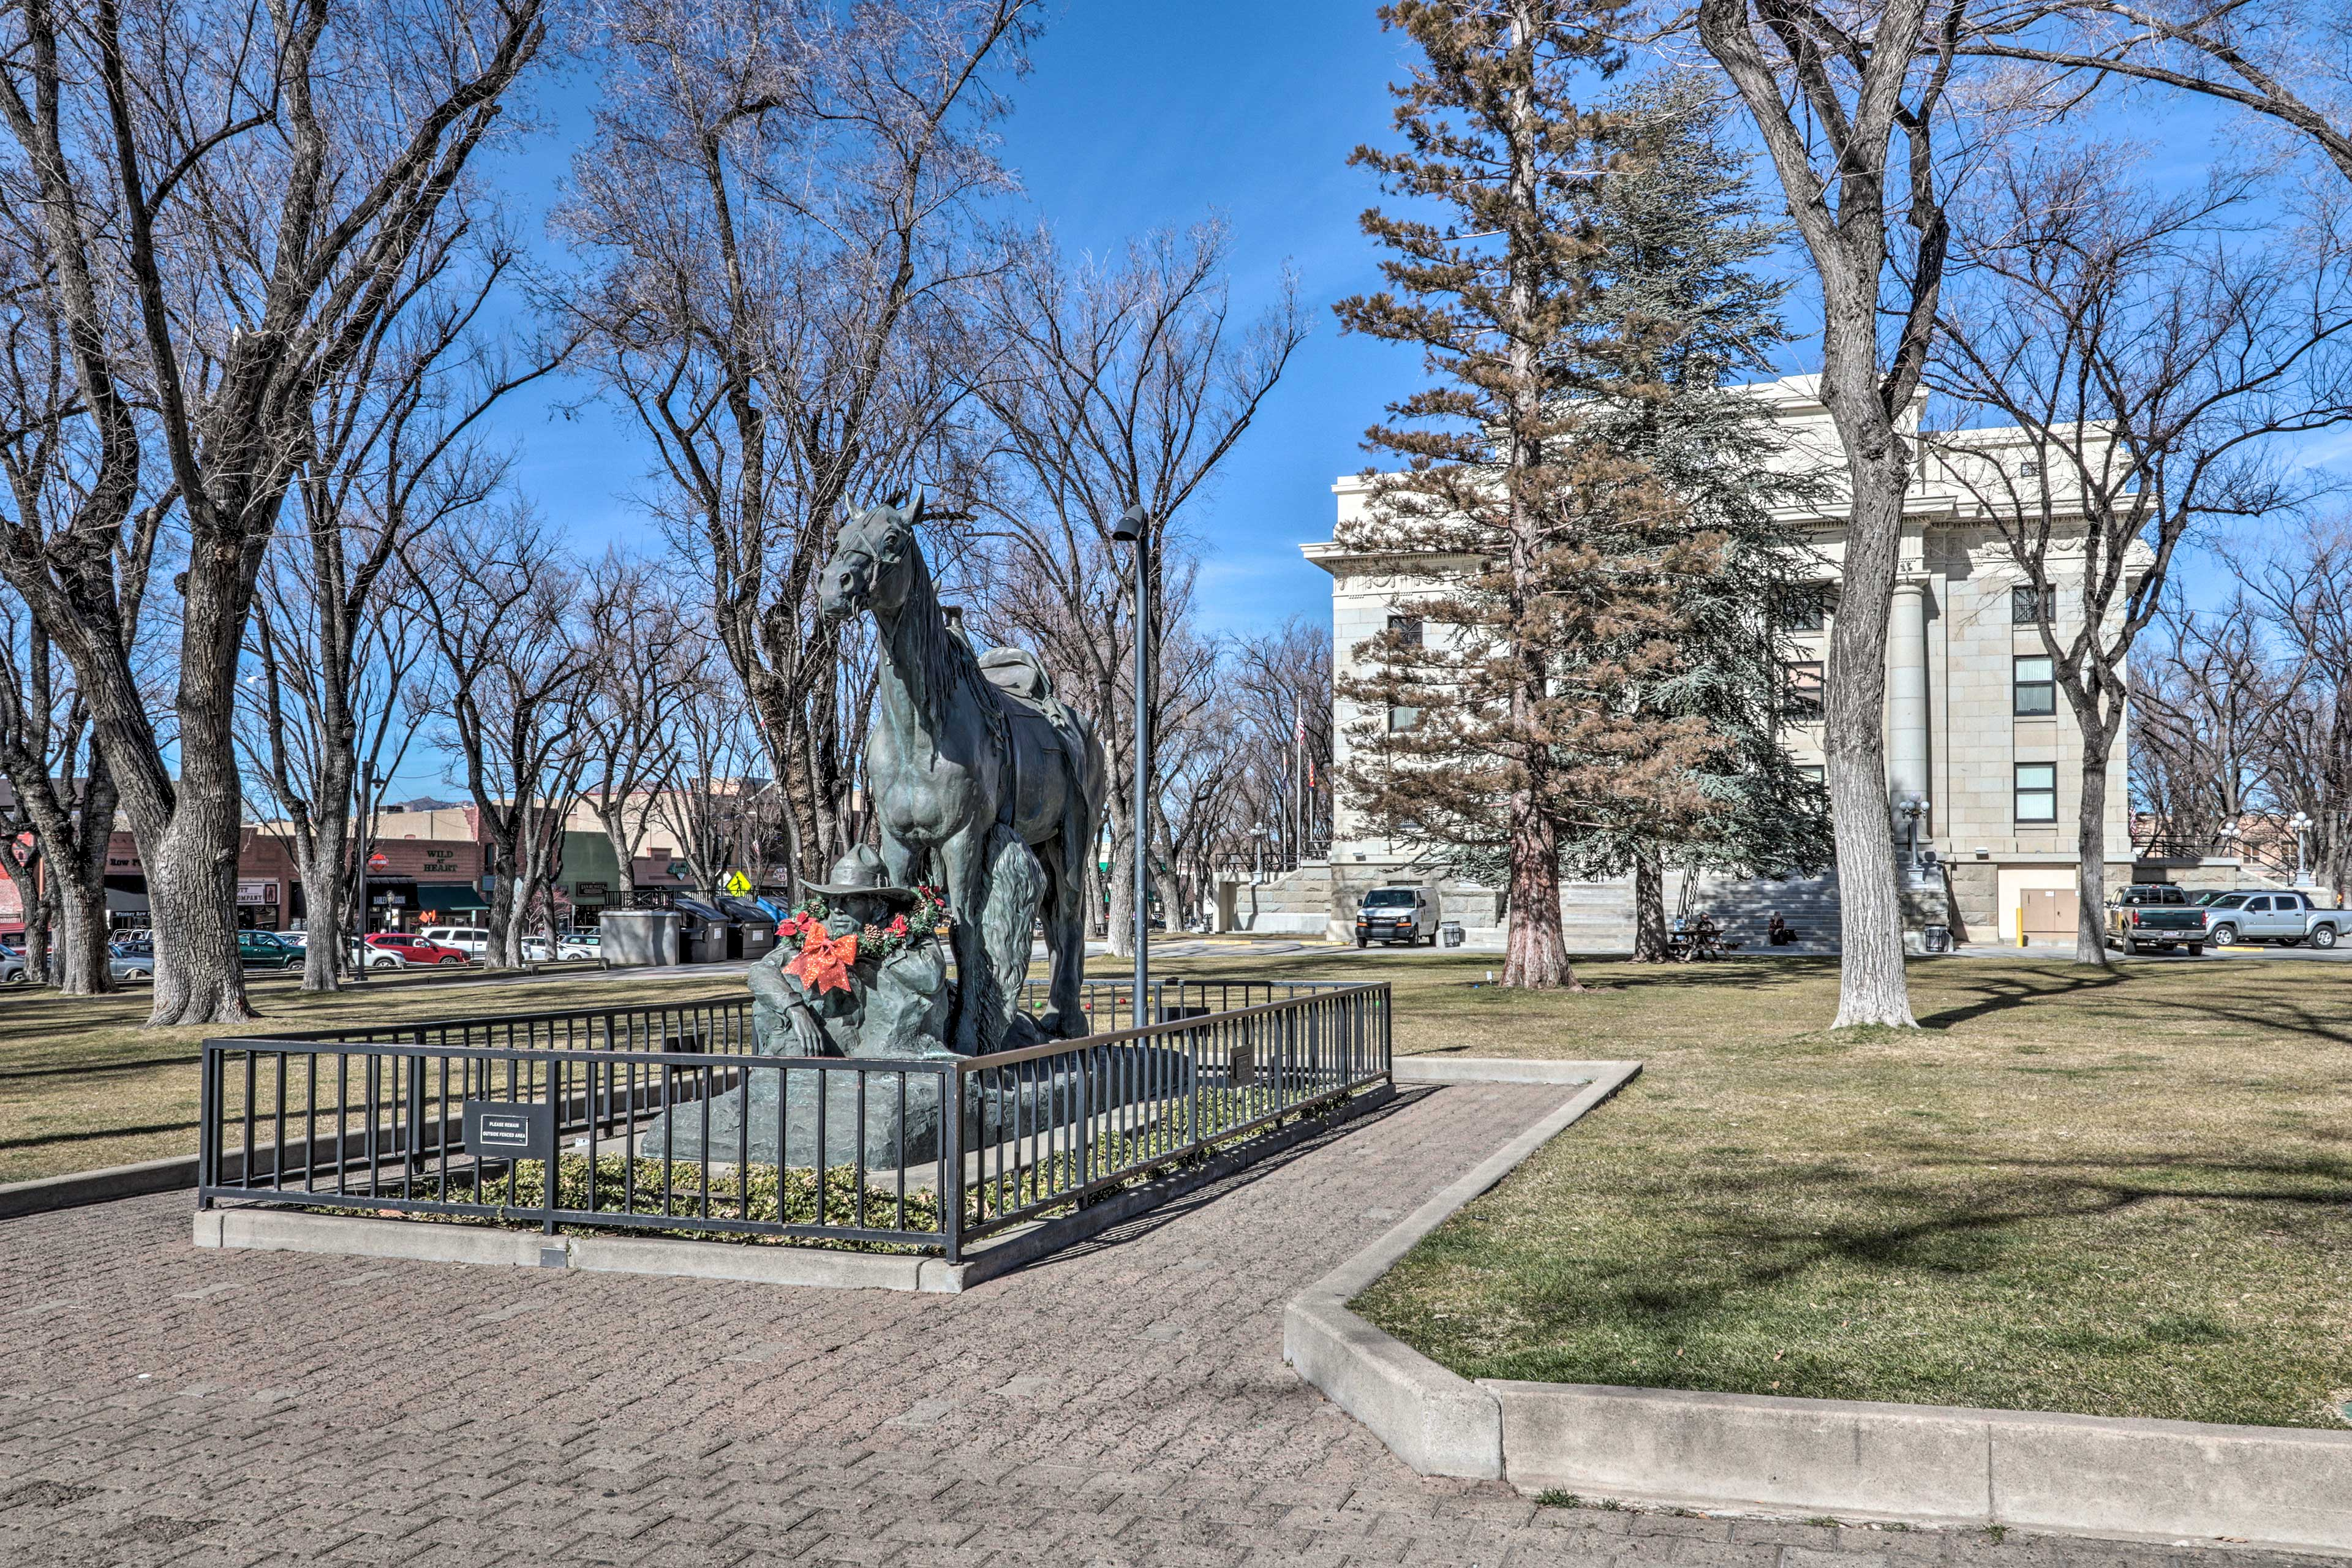 Wander around the famous Courthouse Plaza in the center of town.